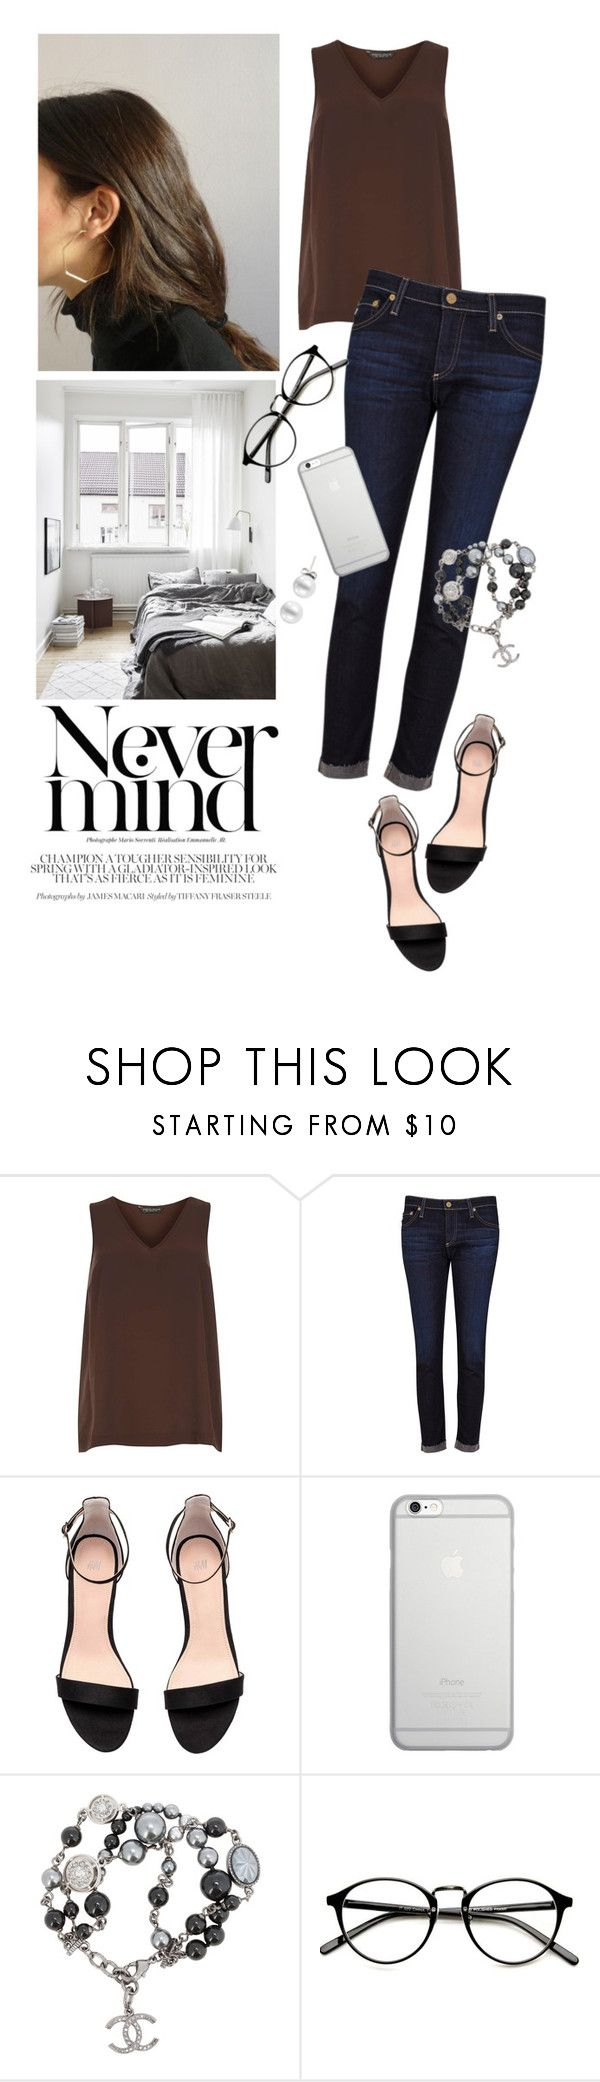 """""""NeverMind"""" by reginakos ❤ liked on Polyvore featuring Dorothy Perkins, AG Adriano Goldschmied, Native Union, Chanel, SimpleOutfits, DenimStyle and 60secondstyle"""